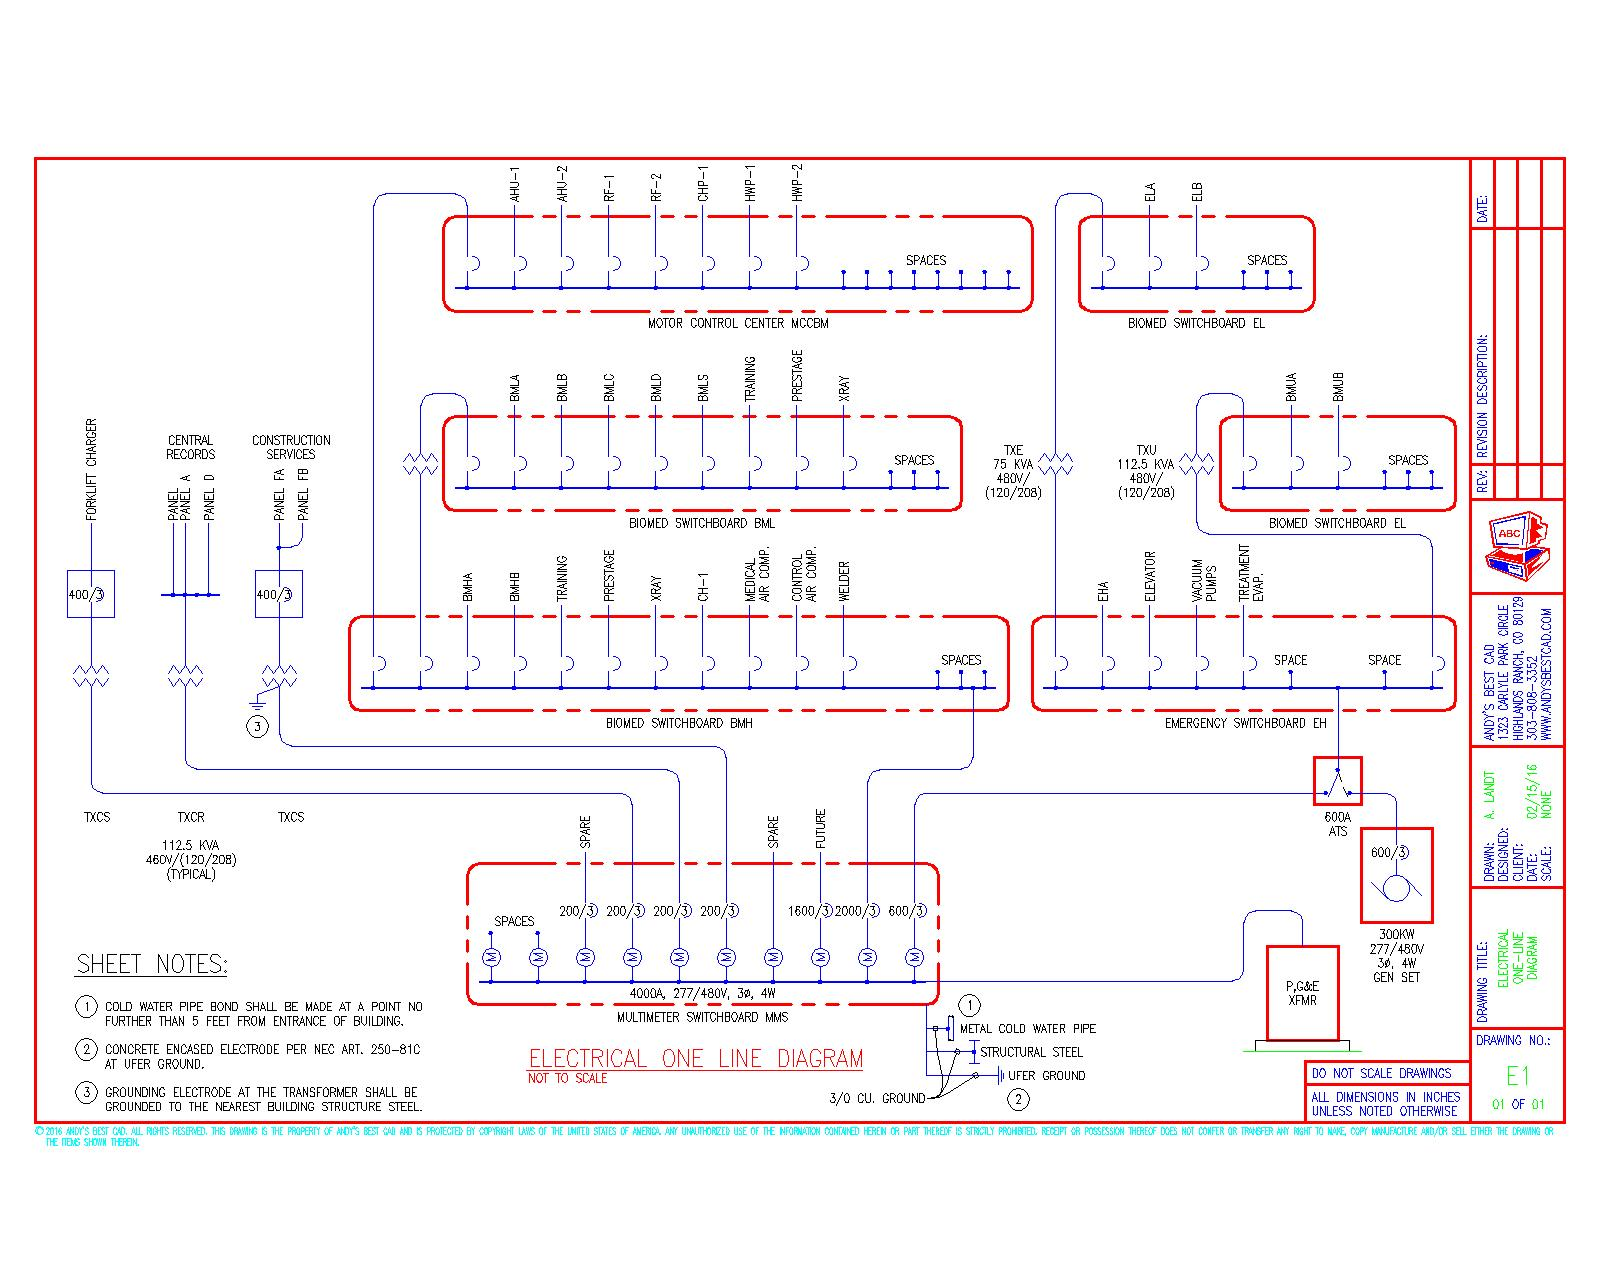 Electrical Drawing at GetDrawings.com | Free for personal ...